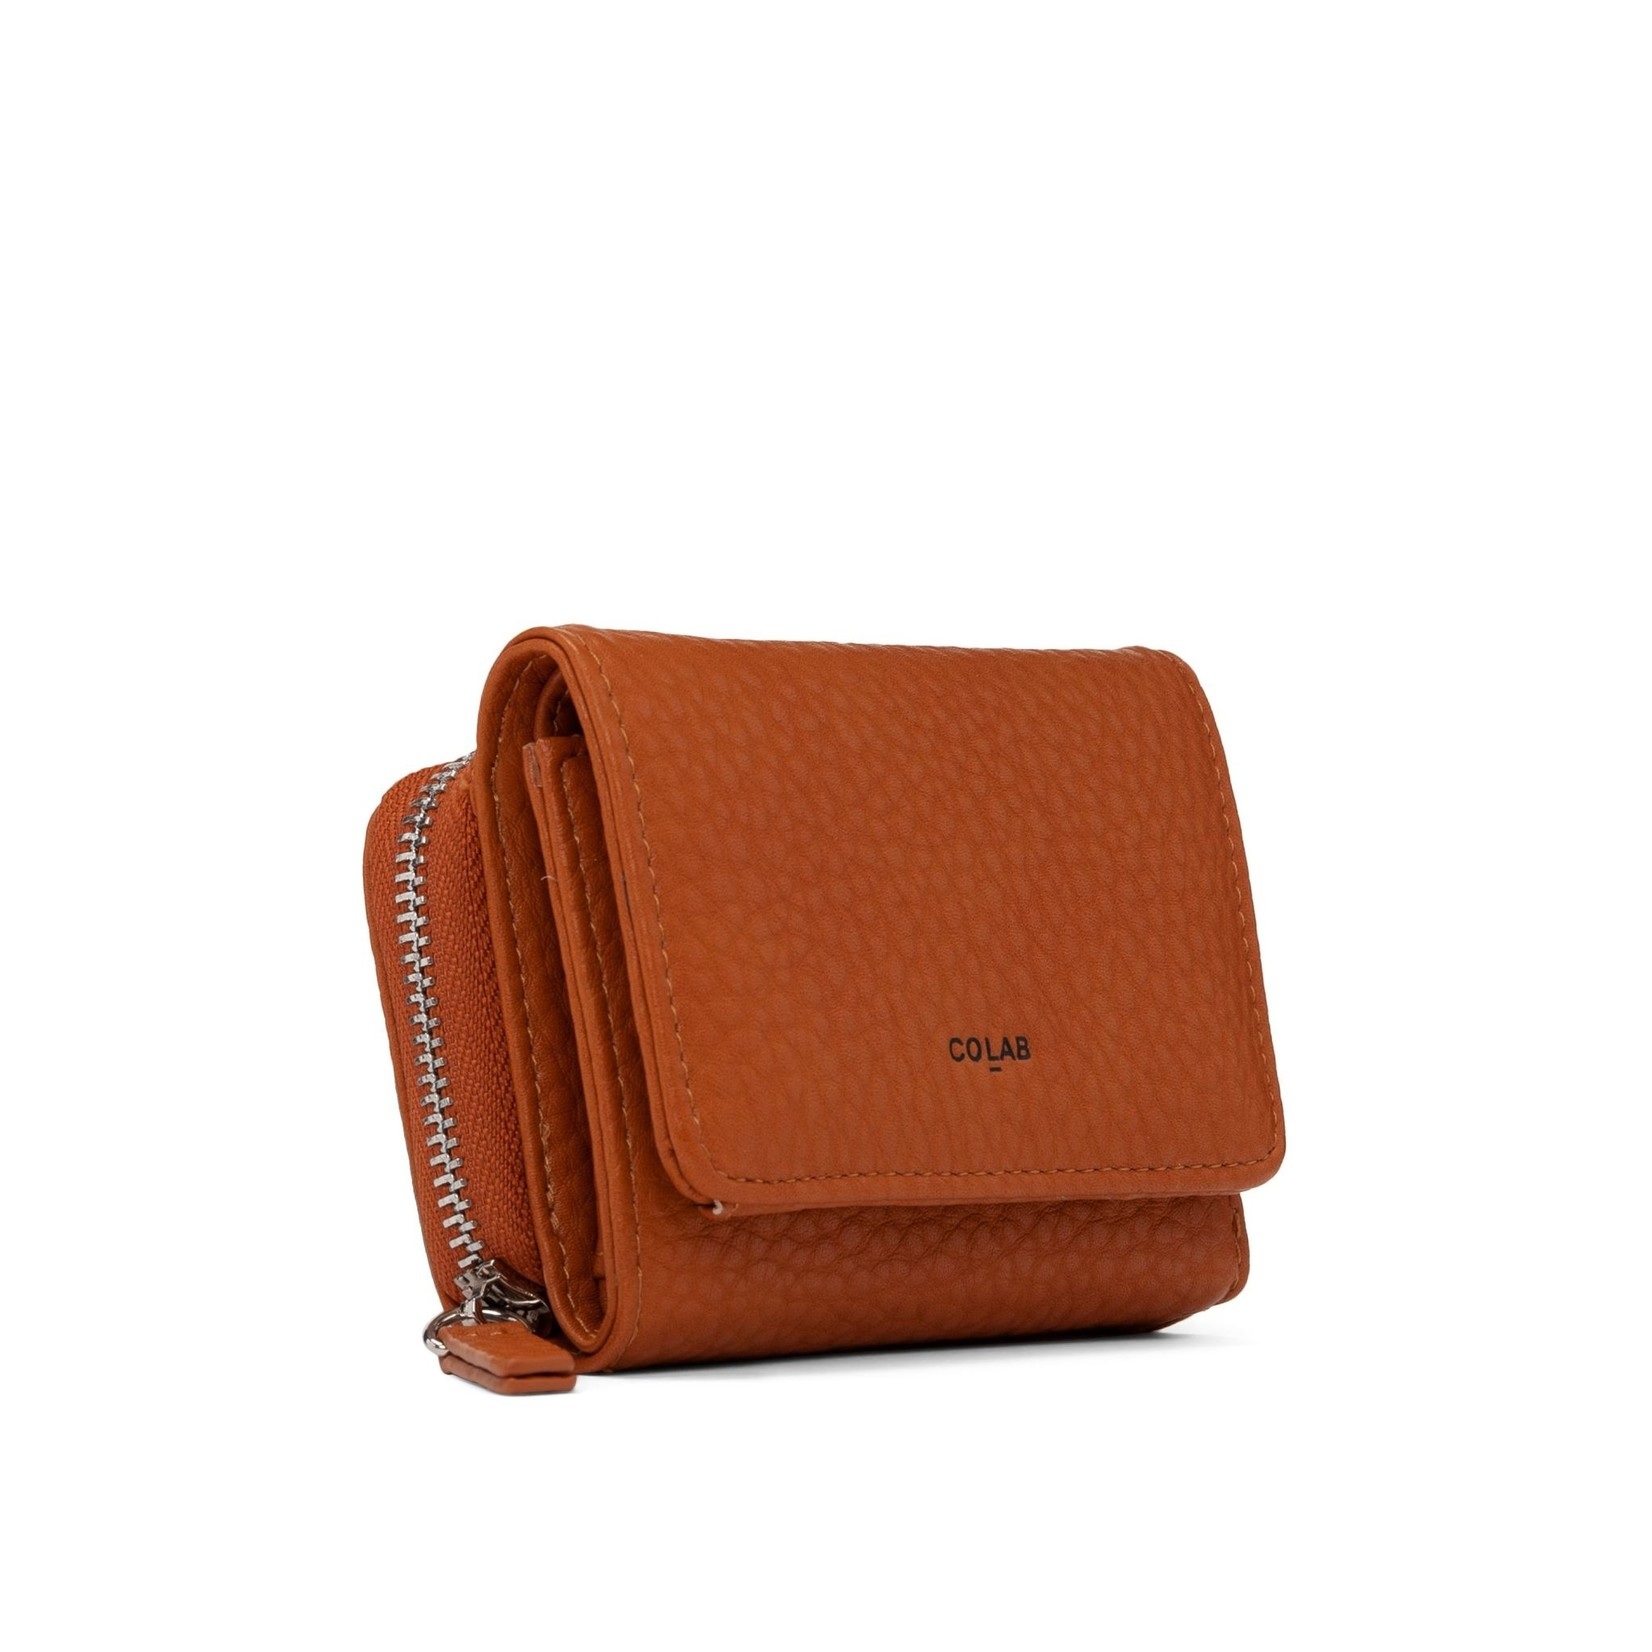 Co-lab Co-lab portefeuille PEBBLE petit/tawny